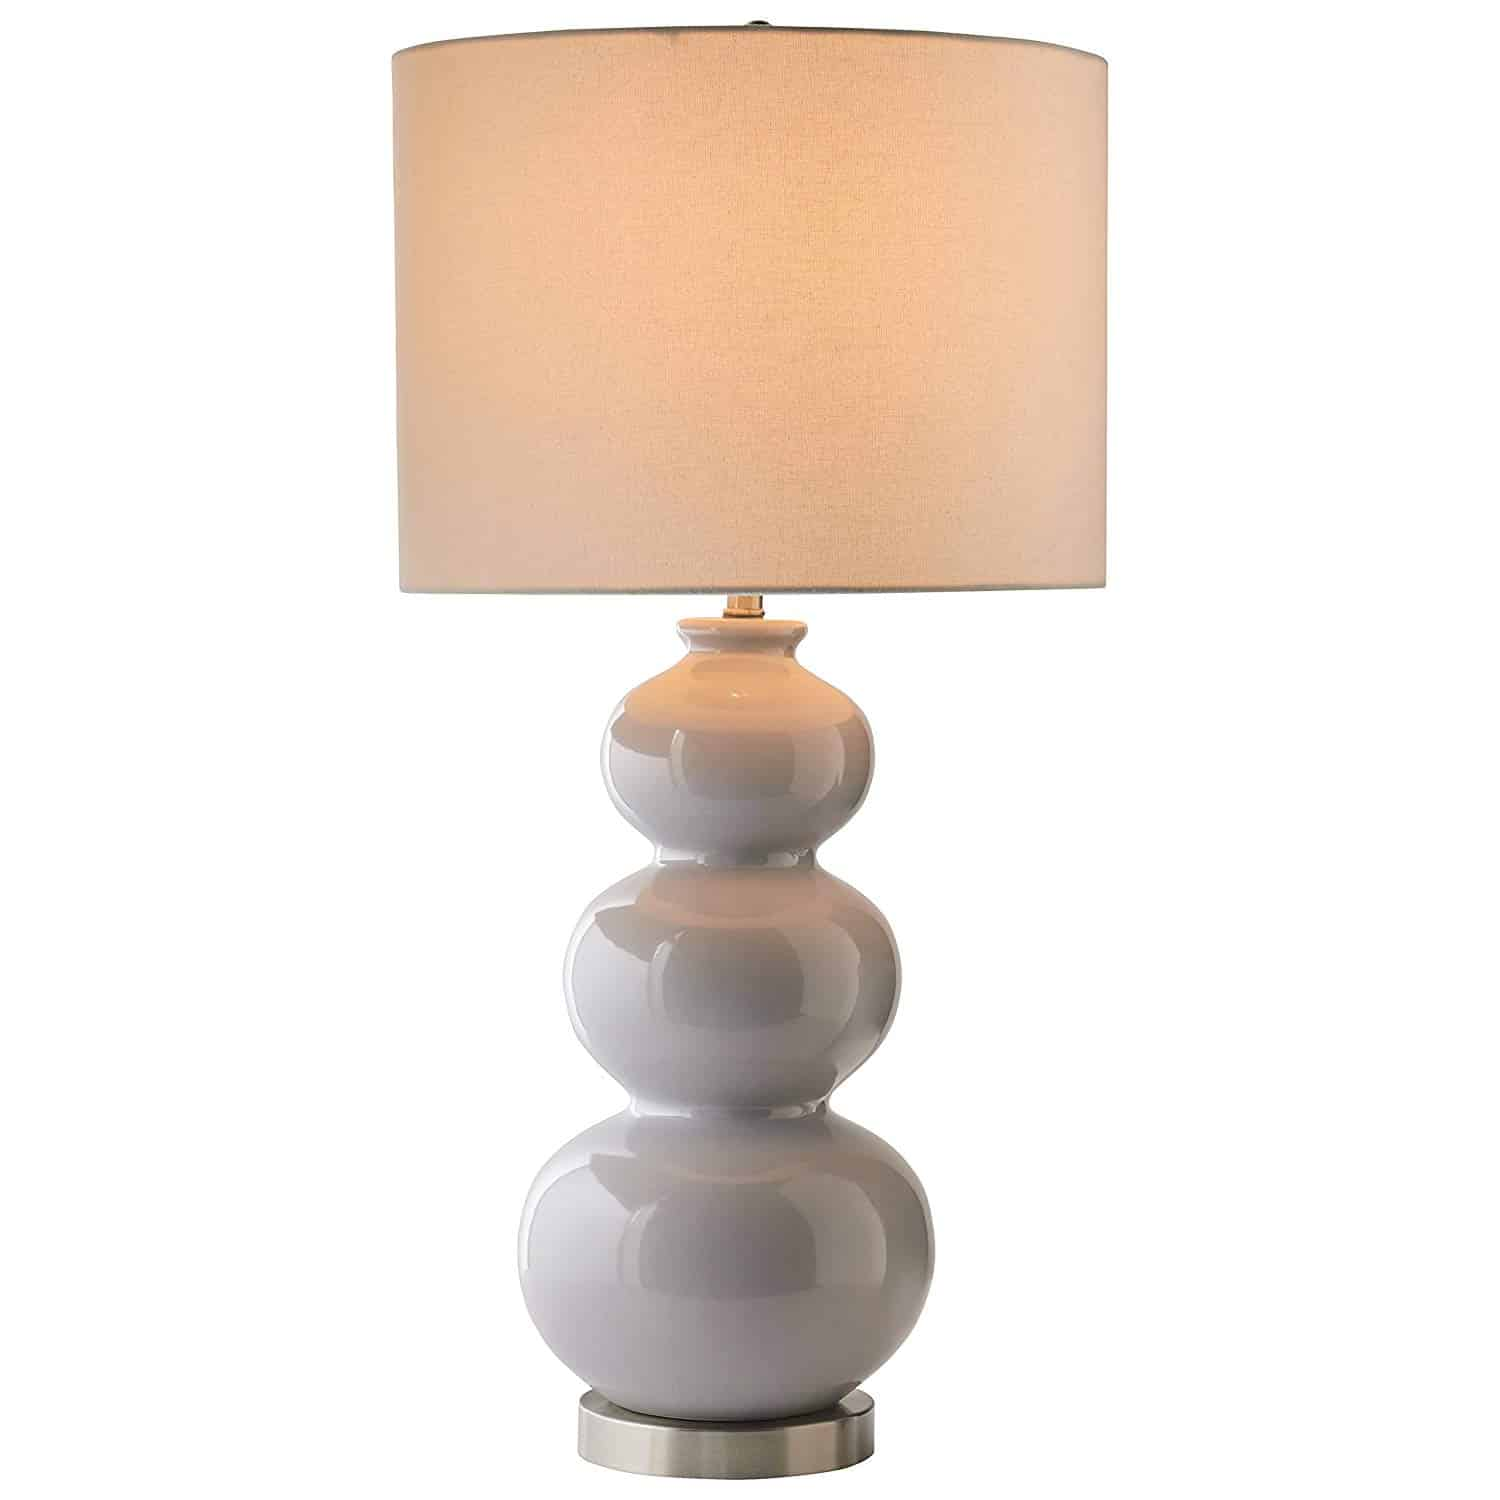 Stone & Beam 3-Sphere Ceramic Lamp